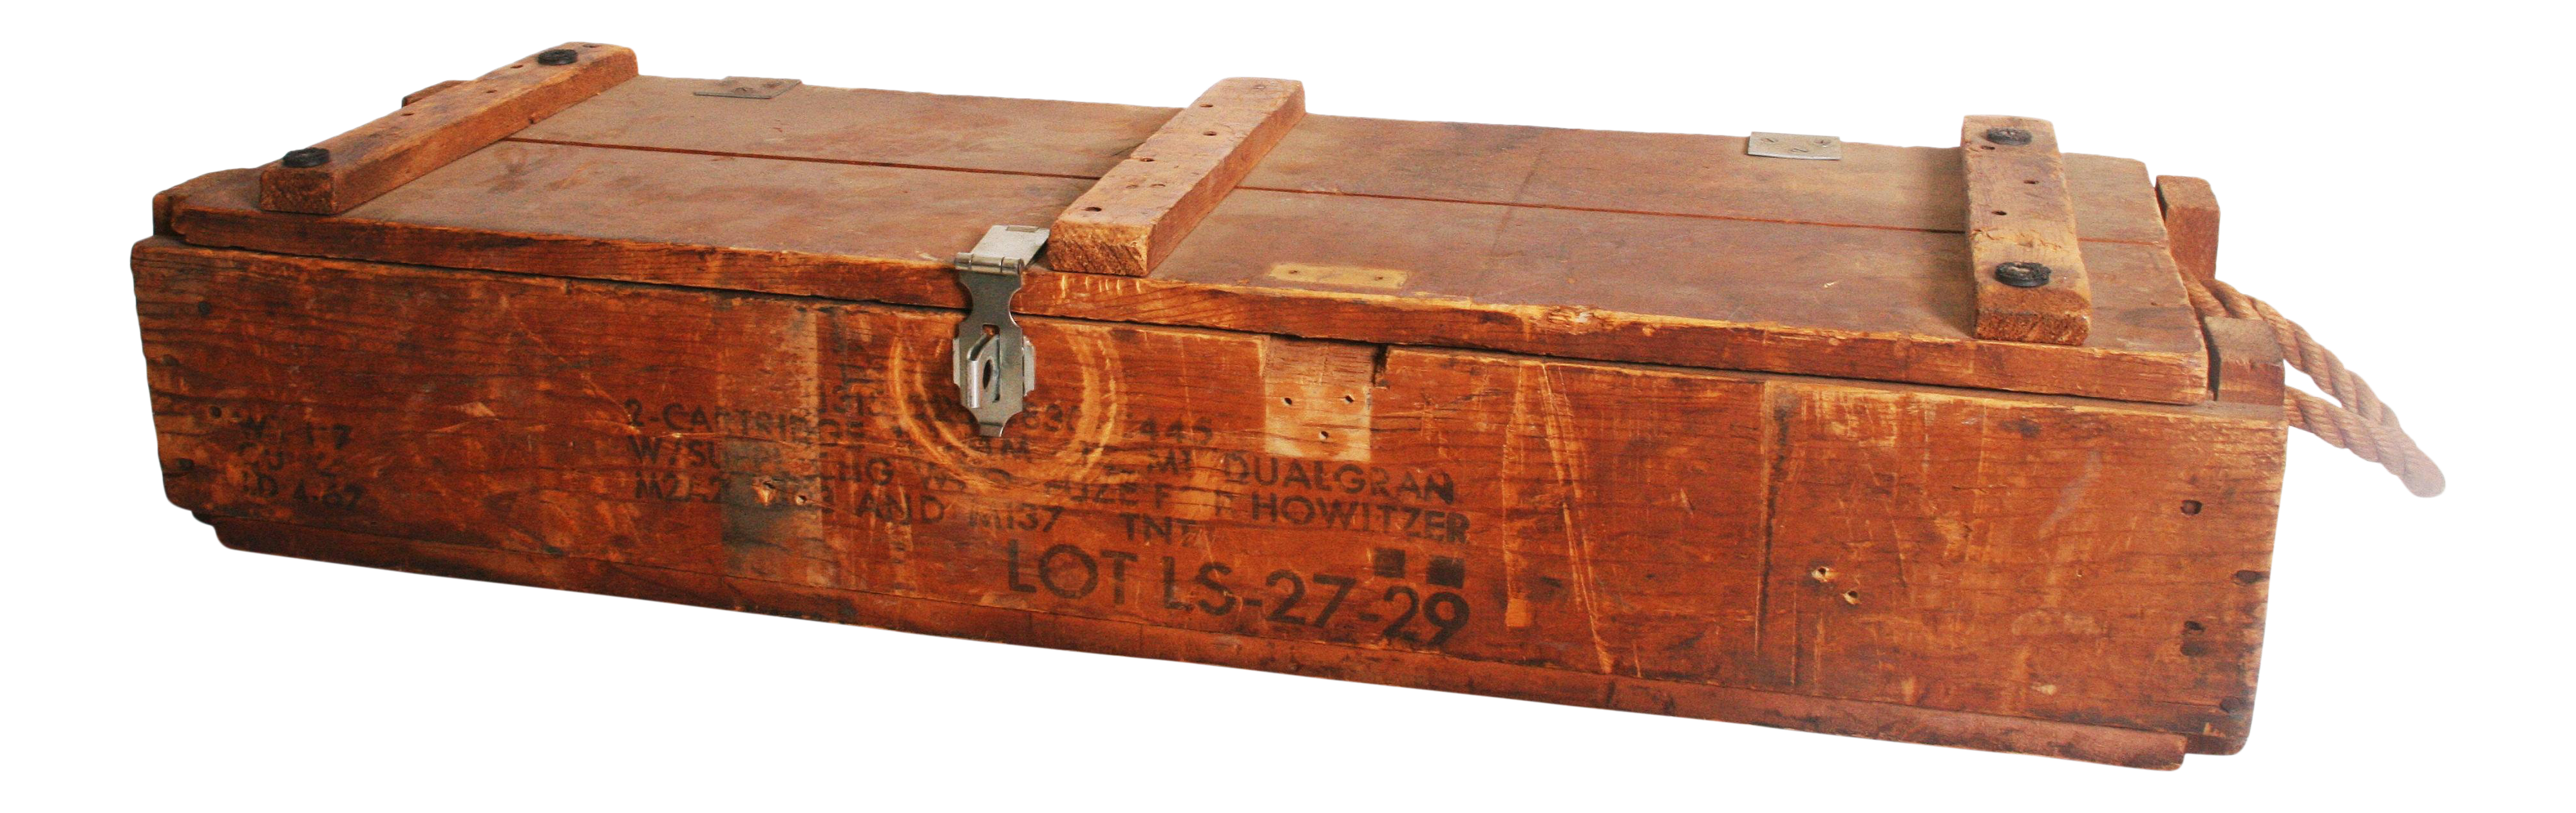 Military crate png. Vintage industrial wood ammo